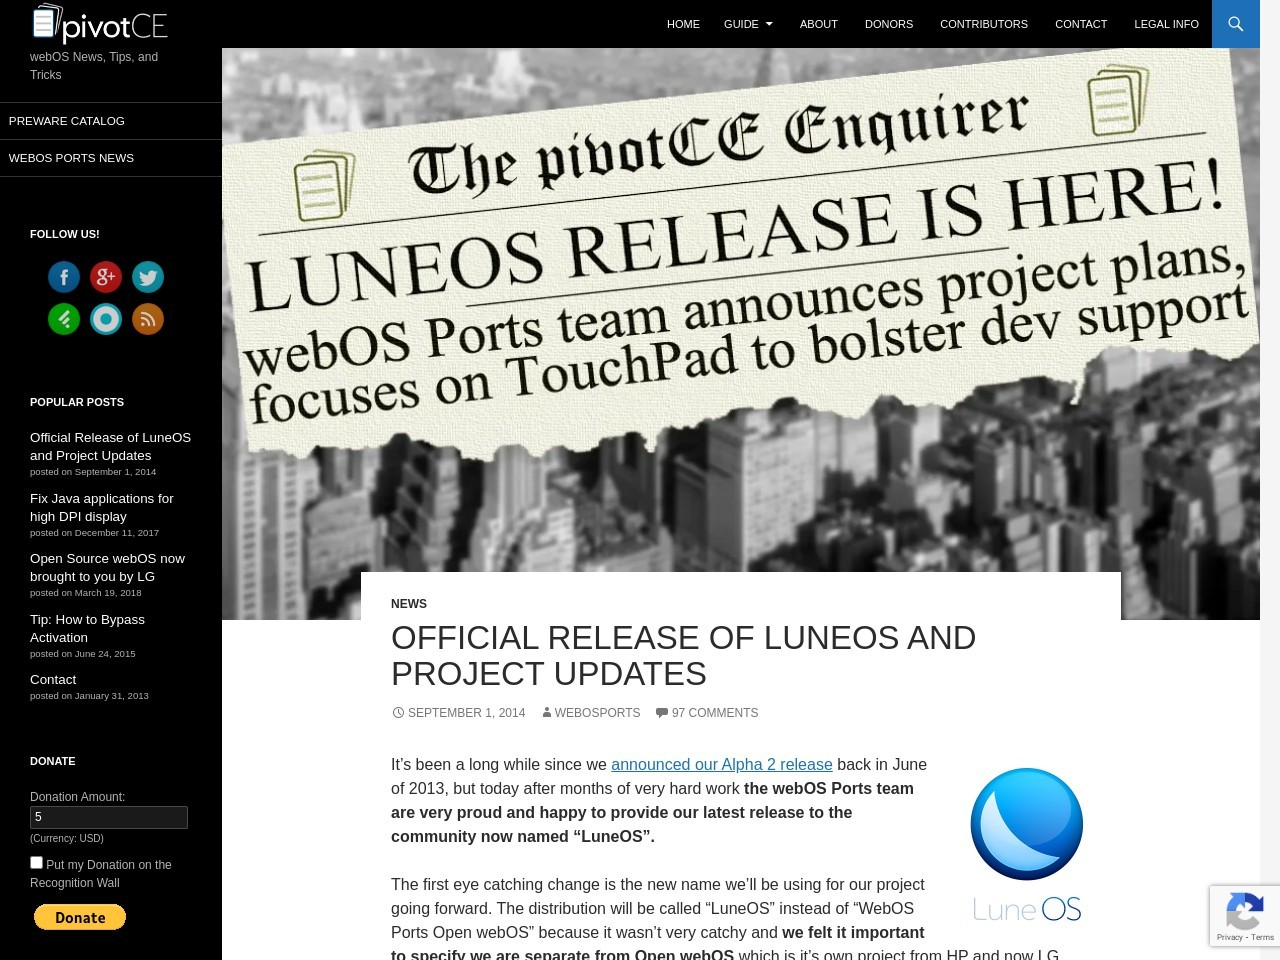 https://pivotce.com/2014/09/01/official-release-of-luneos-and-project-updates/